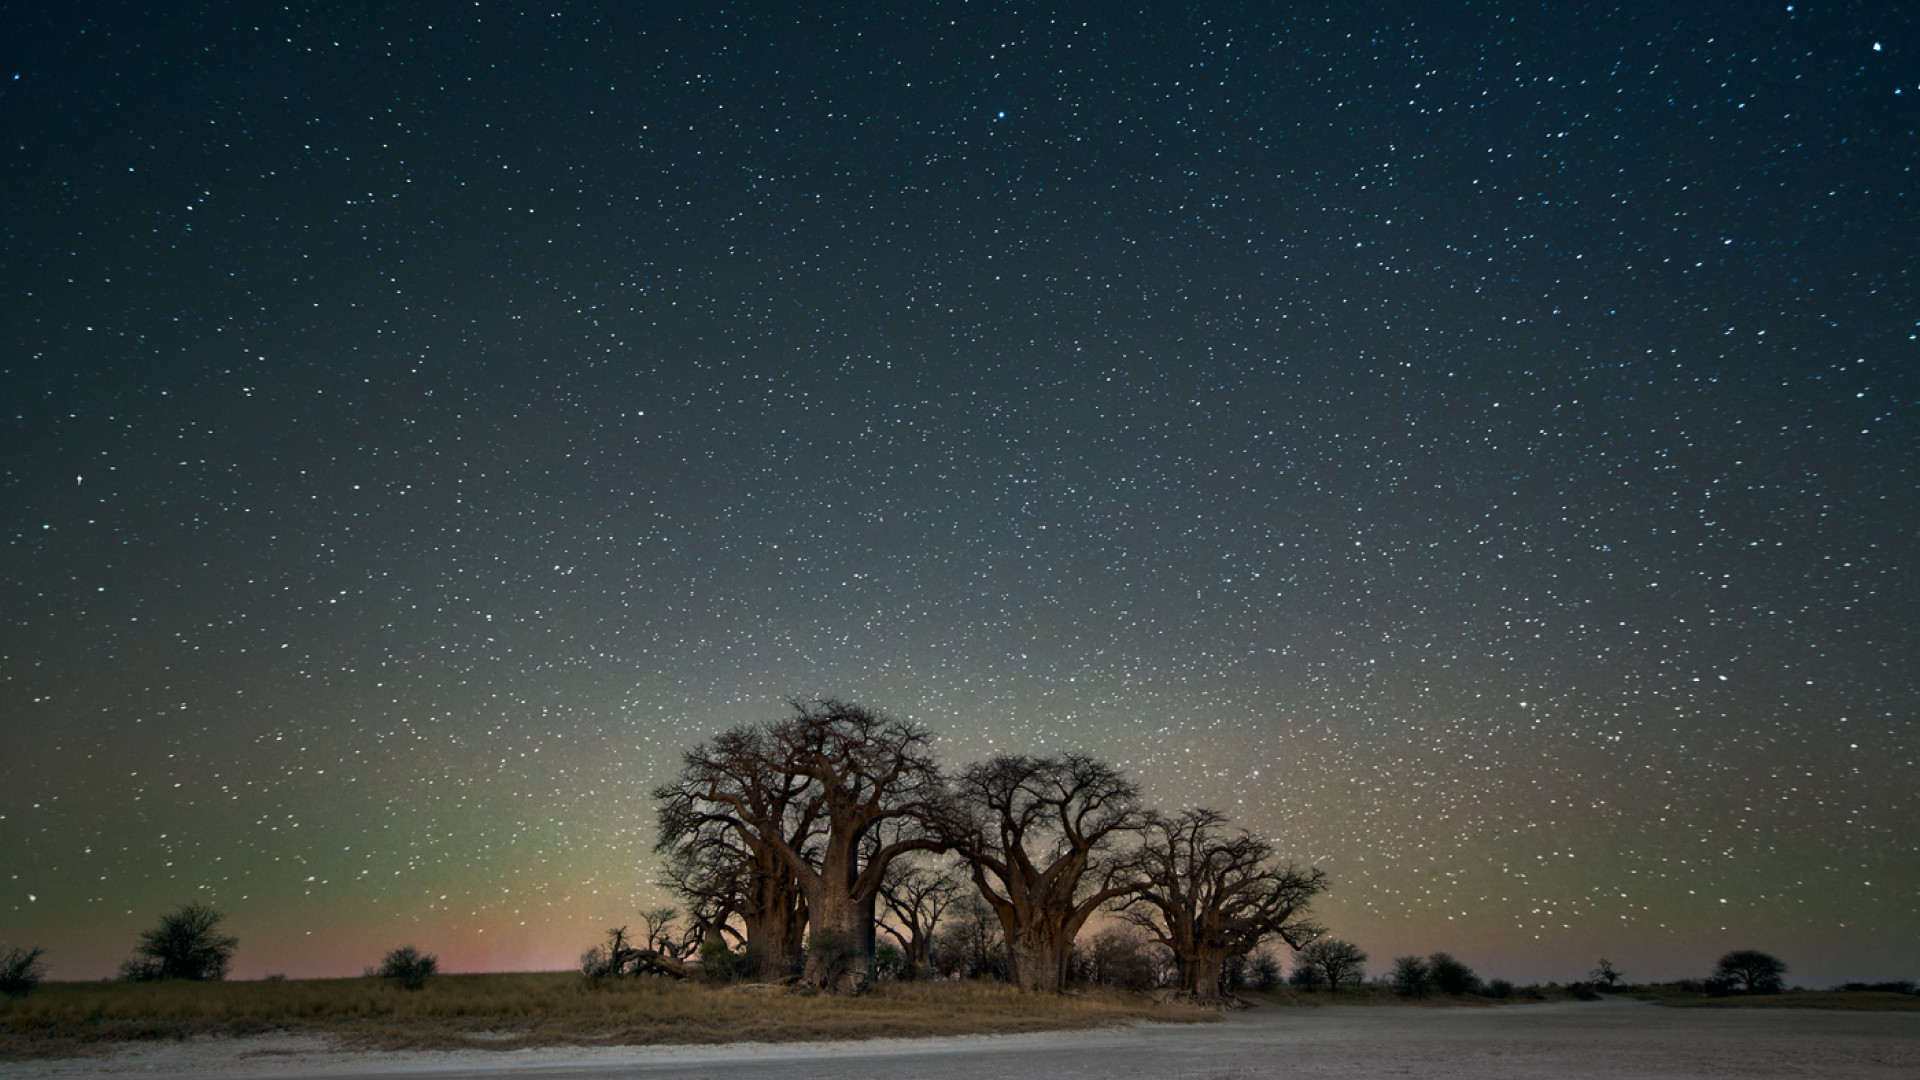 Trees set against starry night sky